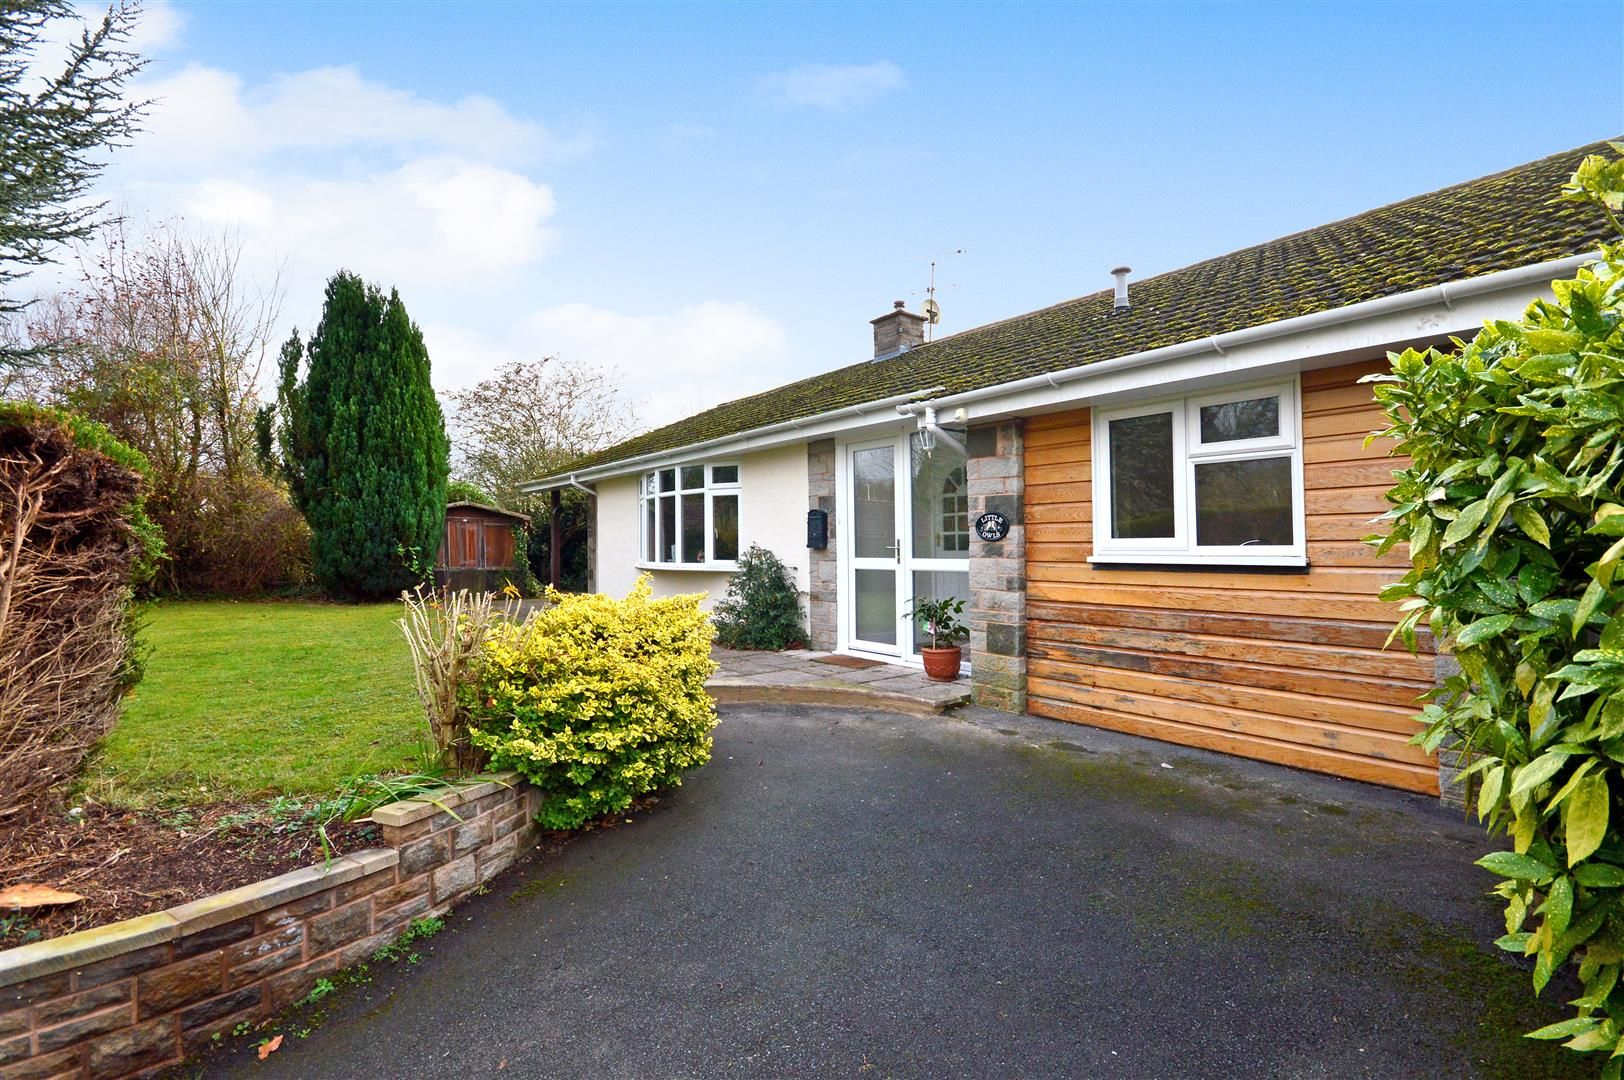 3 bed detached bungalow for sale in Burghill - Property Image 1